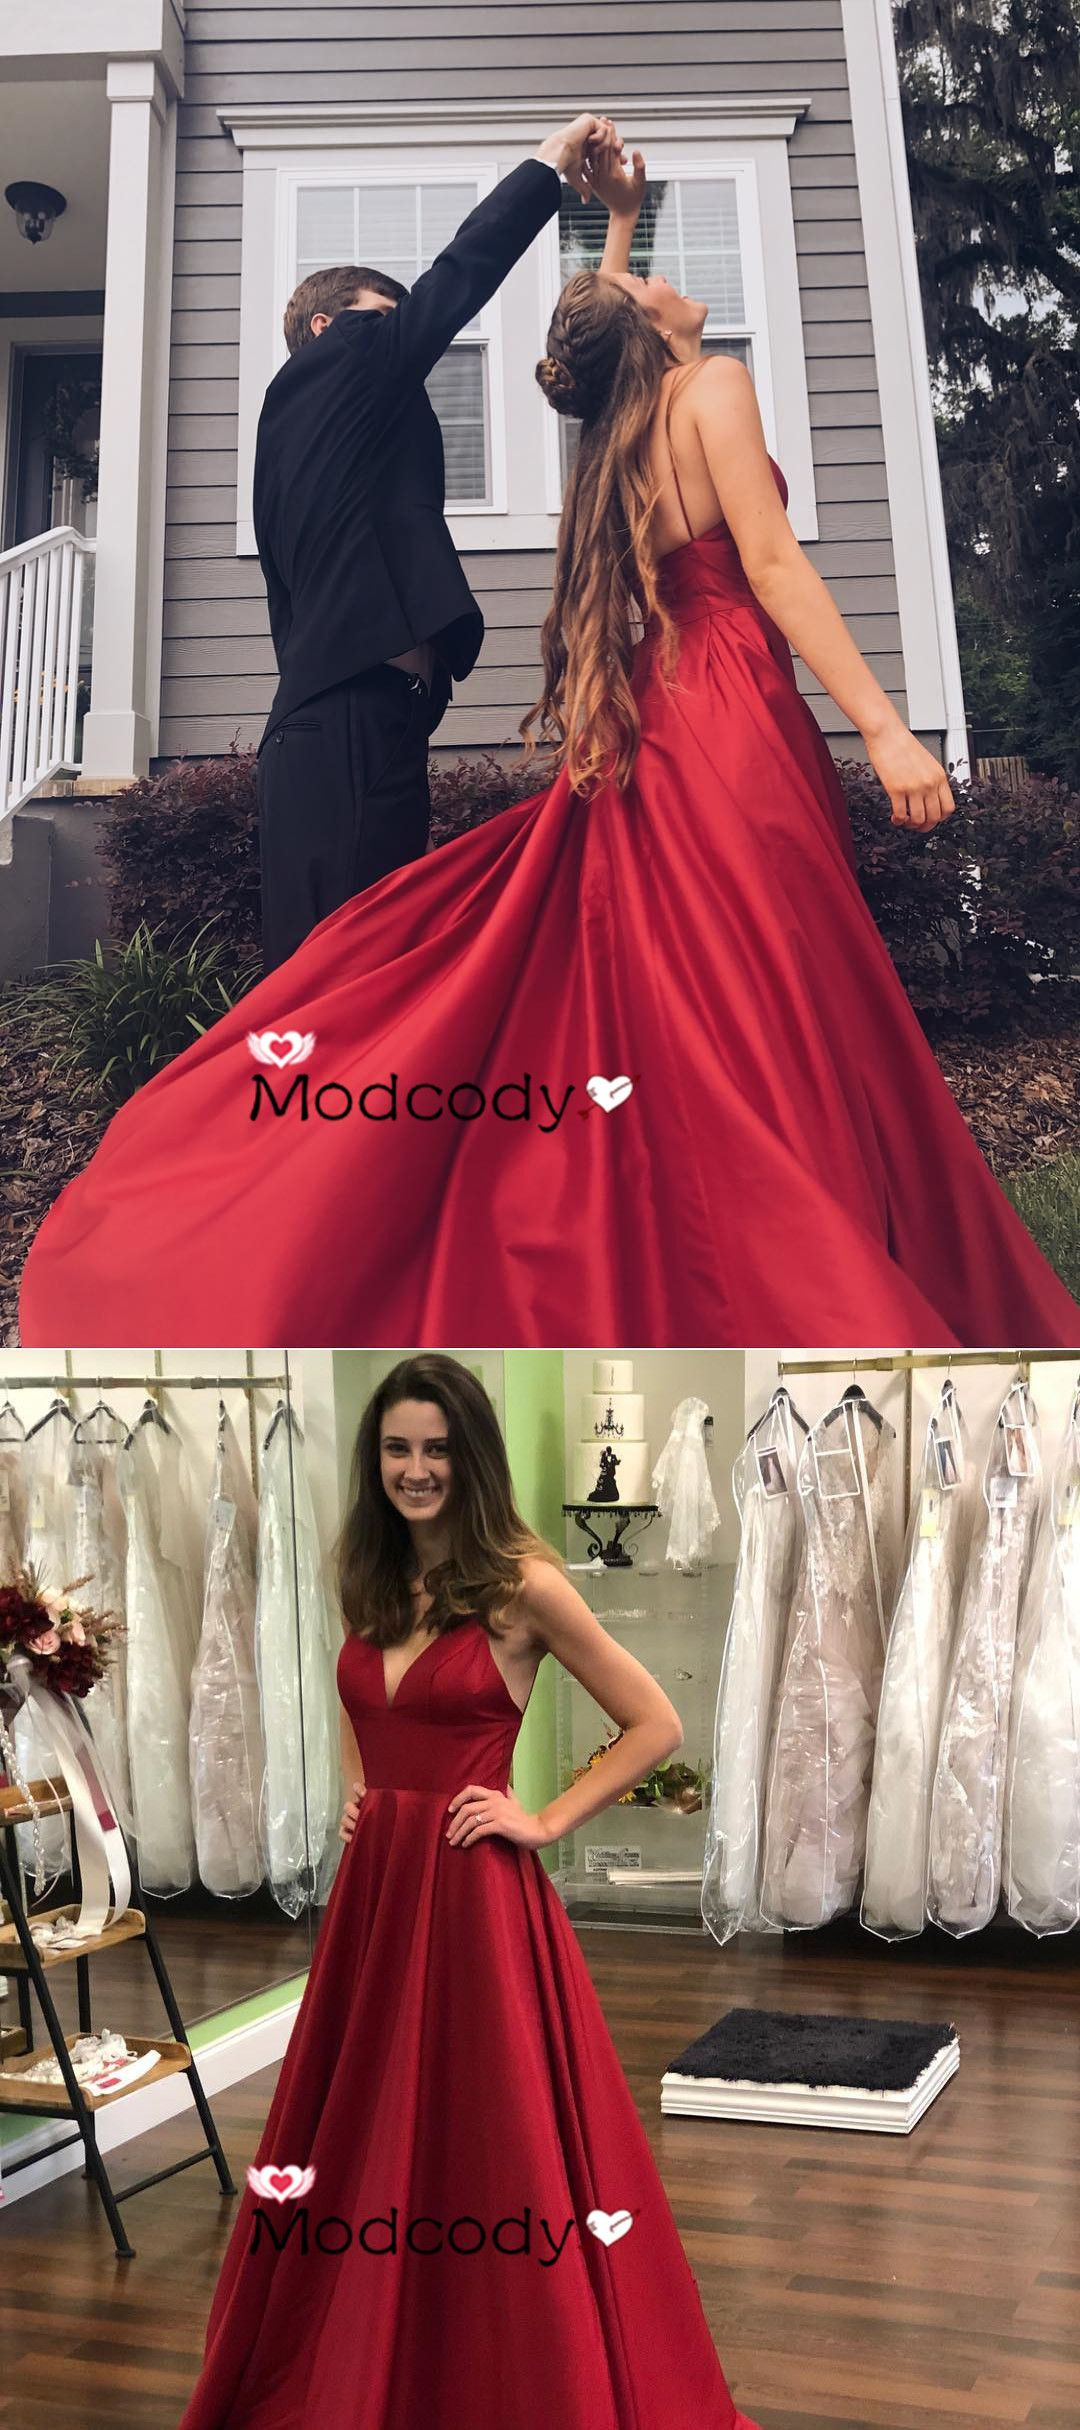 Gorgeous off the shoulder wine red long formal dress from modcody